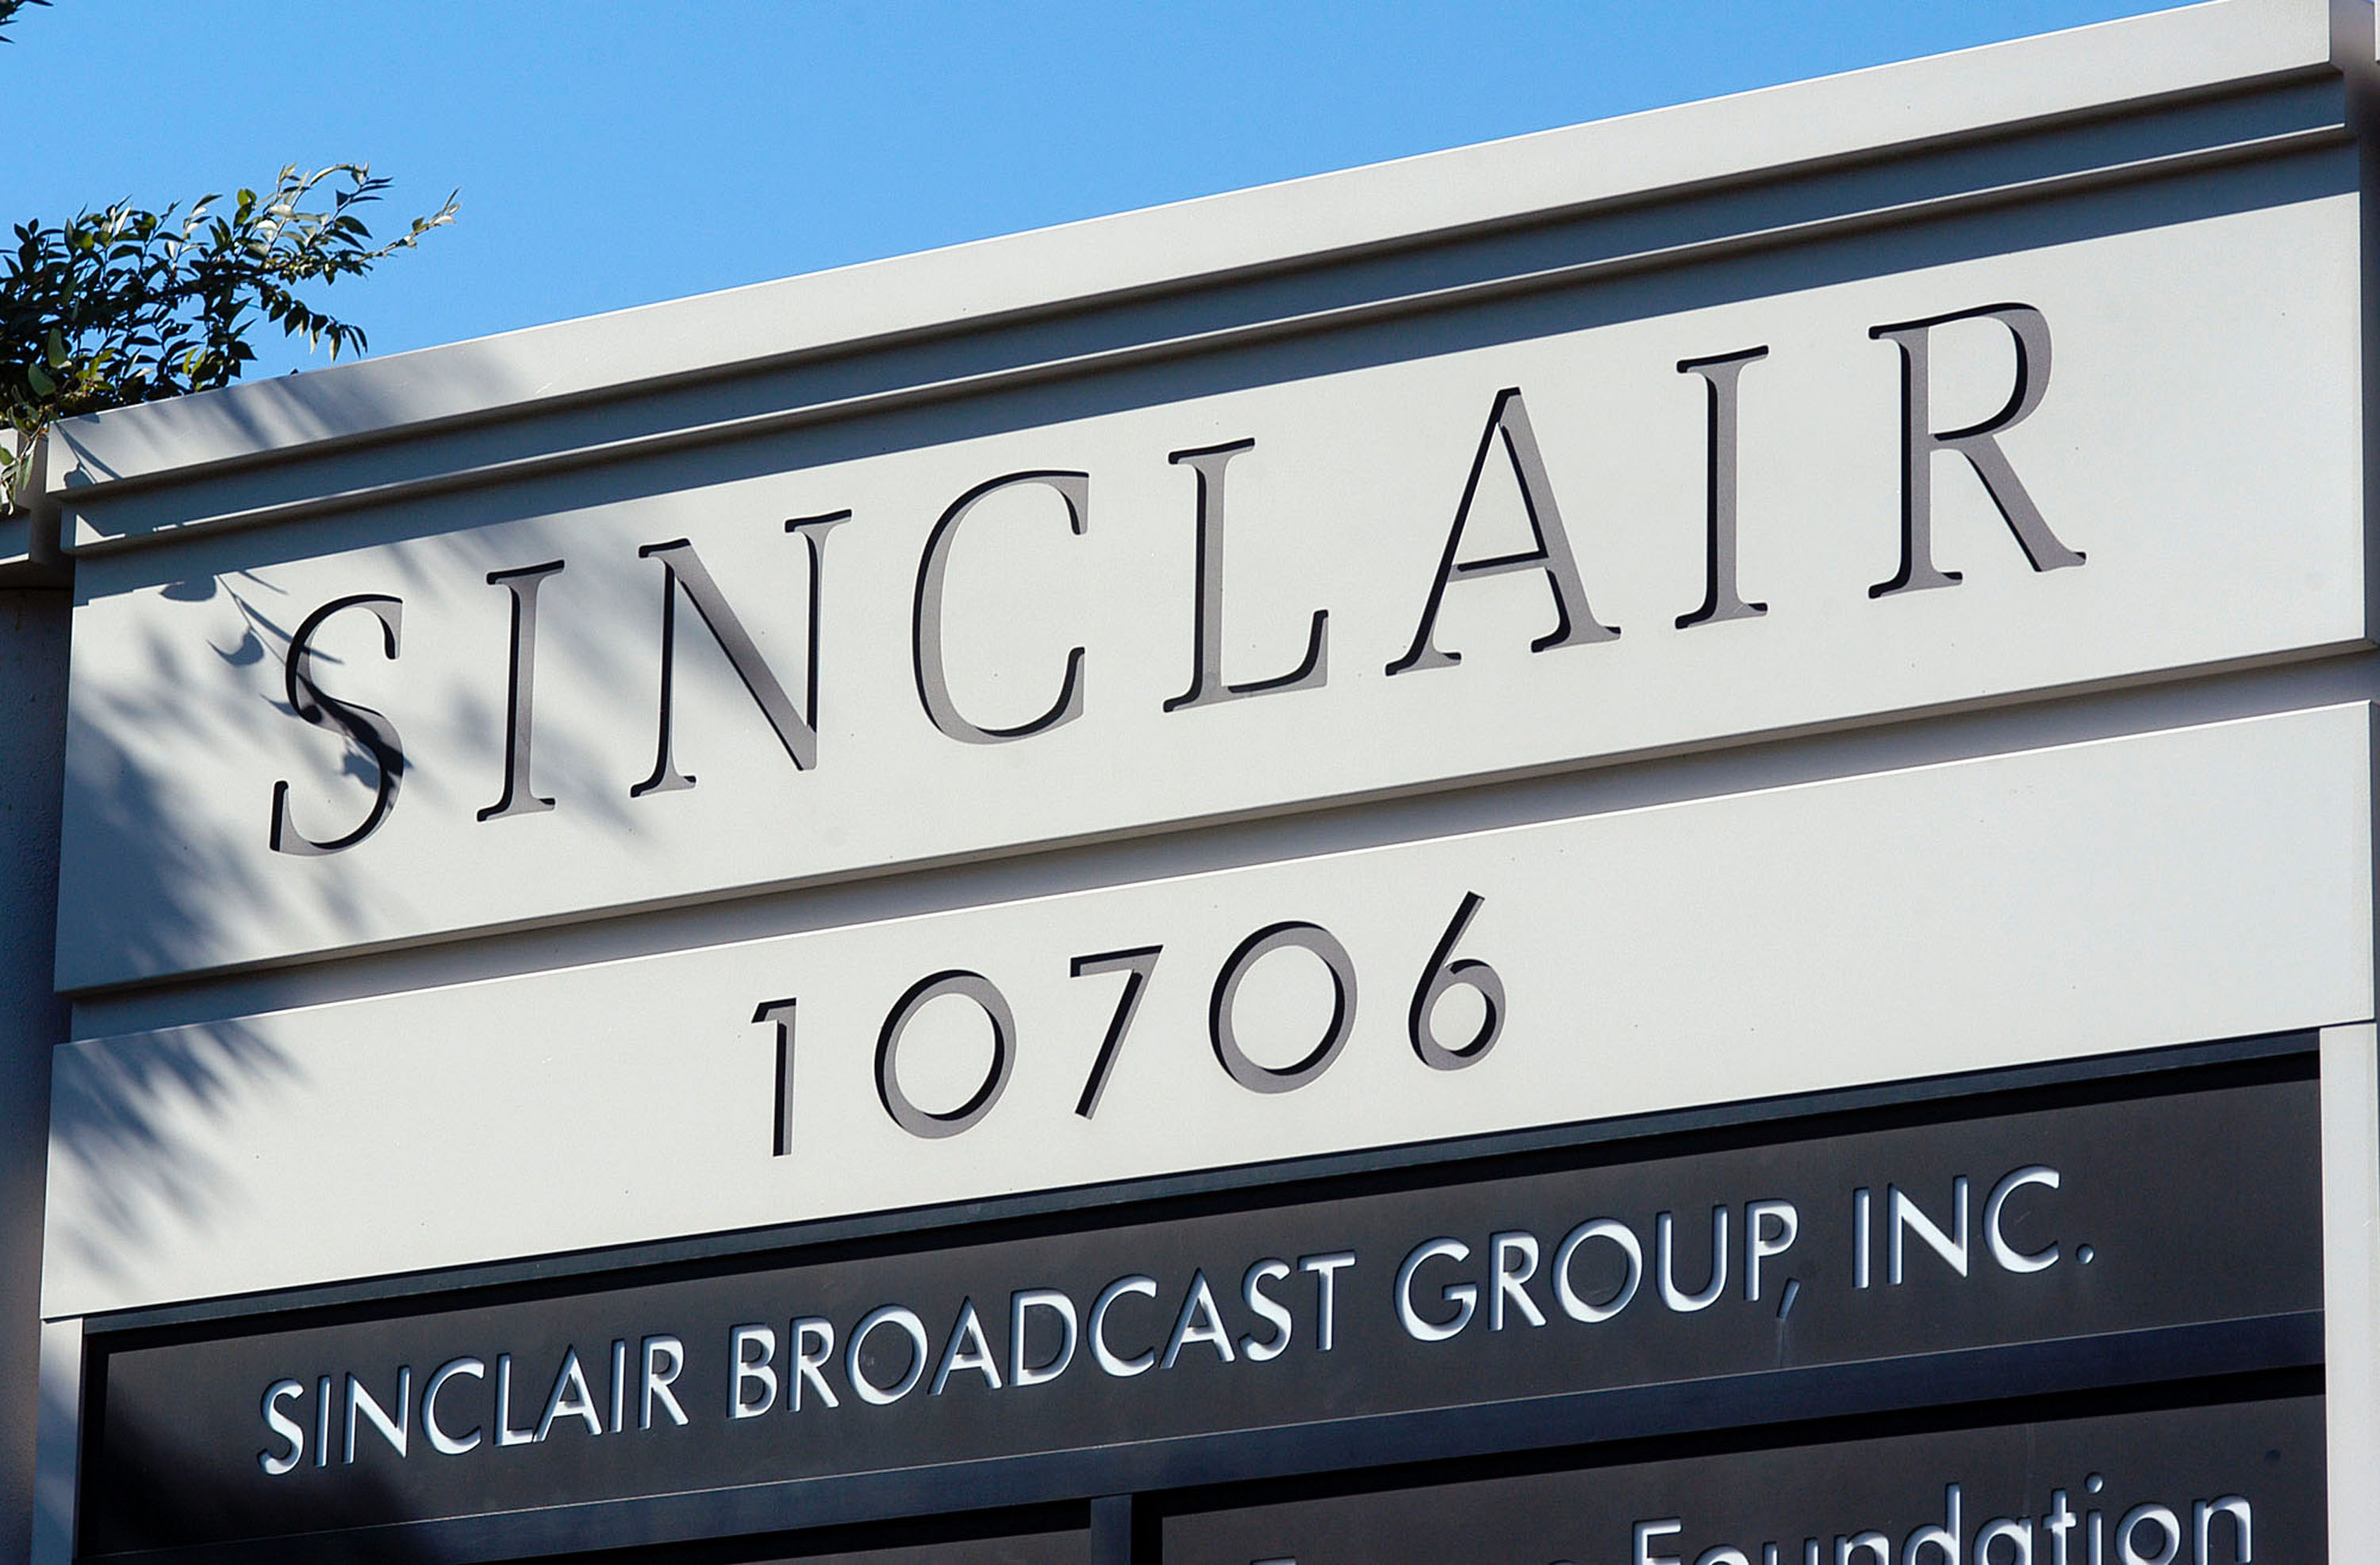 HUNT VALLEY, MD - OCTOBER 12: The Sinclair Broadcast building sits in a buisness district in Hunt Valley, Maryland October 12, 2004. Sinclair Broadcast Group, the owner of the largest chain of television stations in the nation, plans to preempt regular programming two weeks before the Nov. 2 election to air a documentary that accuses John Kerry of betraying American prisoners during the Vietnam War.  (Photo by William Thomas Cain/Getty Images)